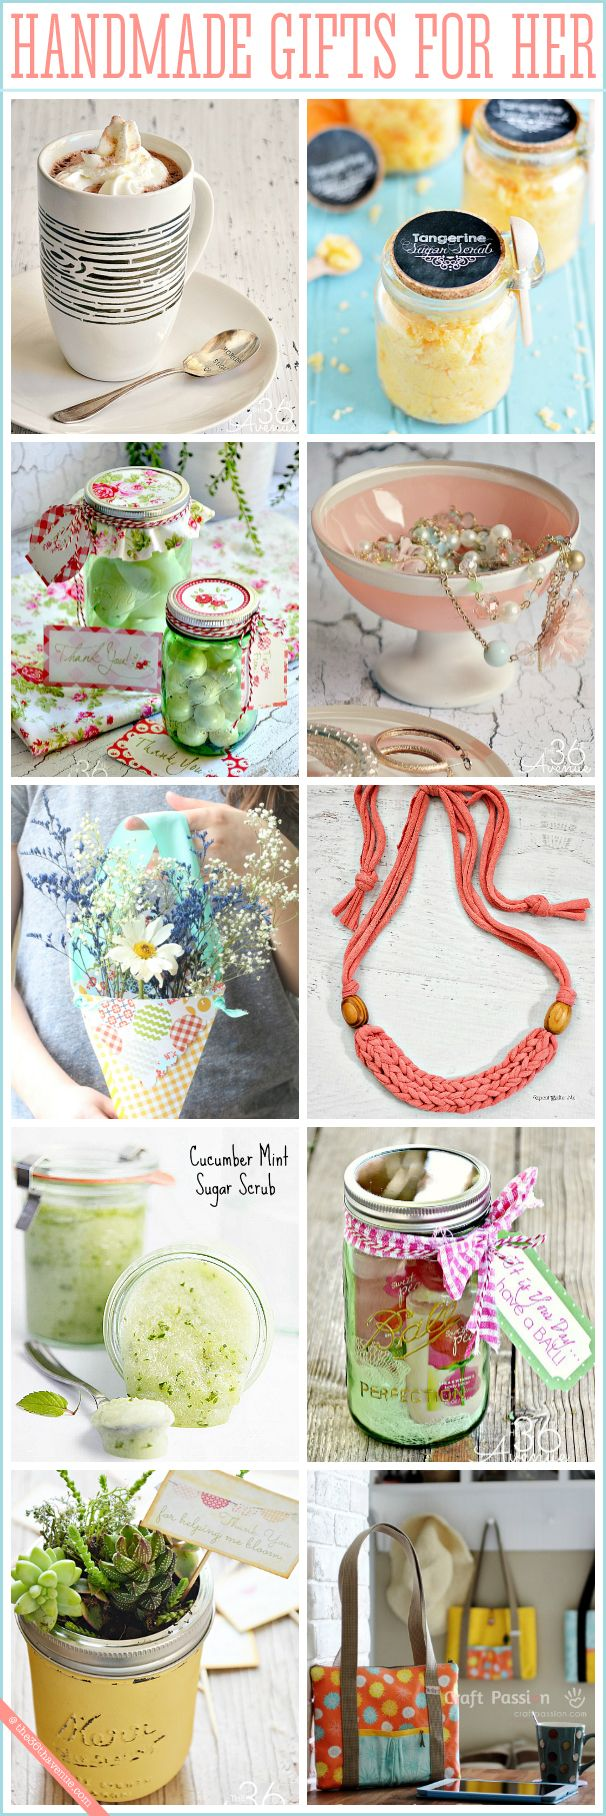 159 best images about Gifts on Pinterest